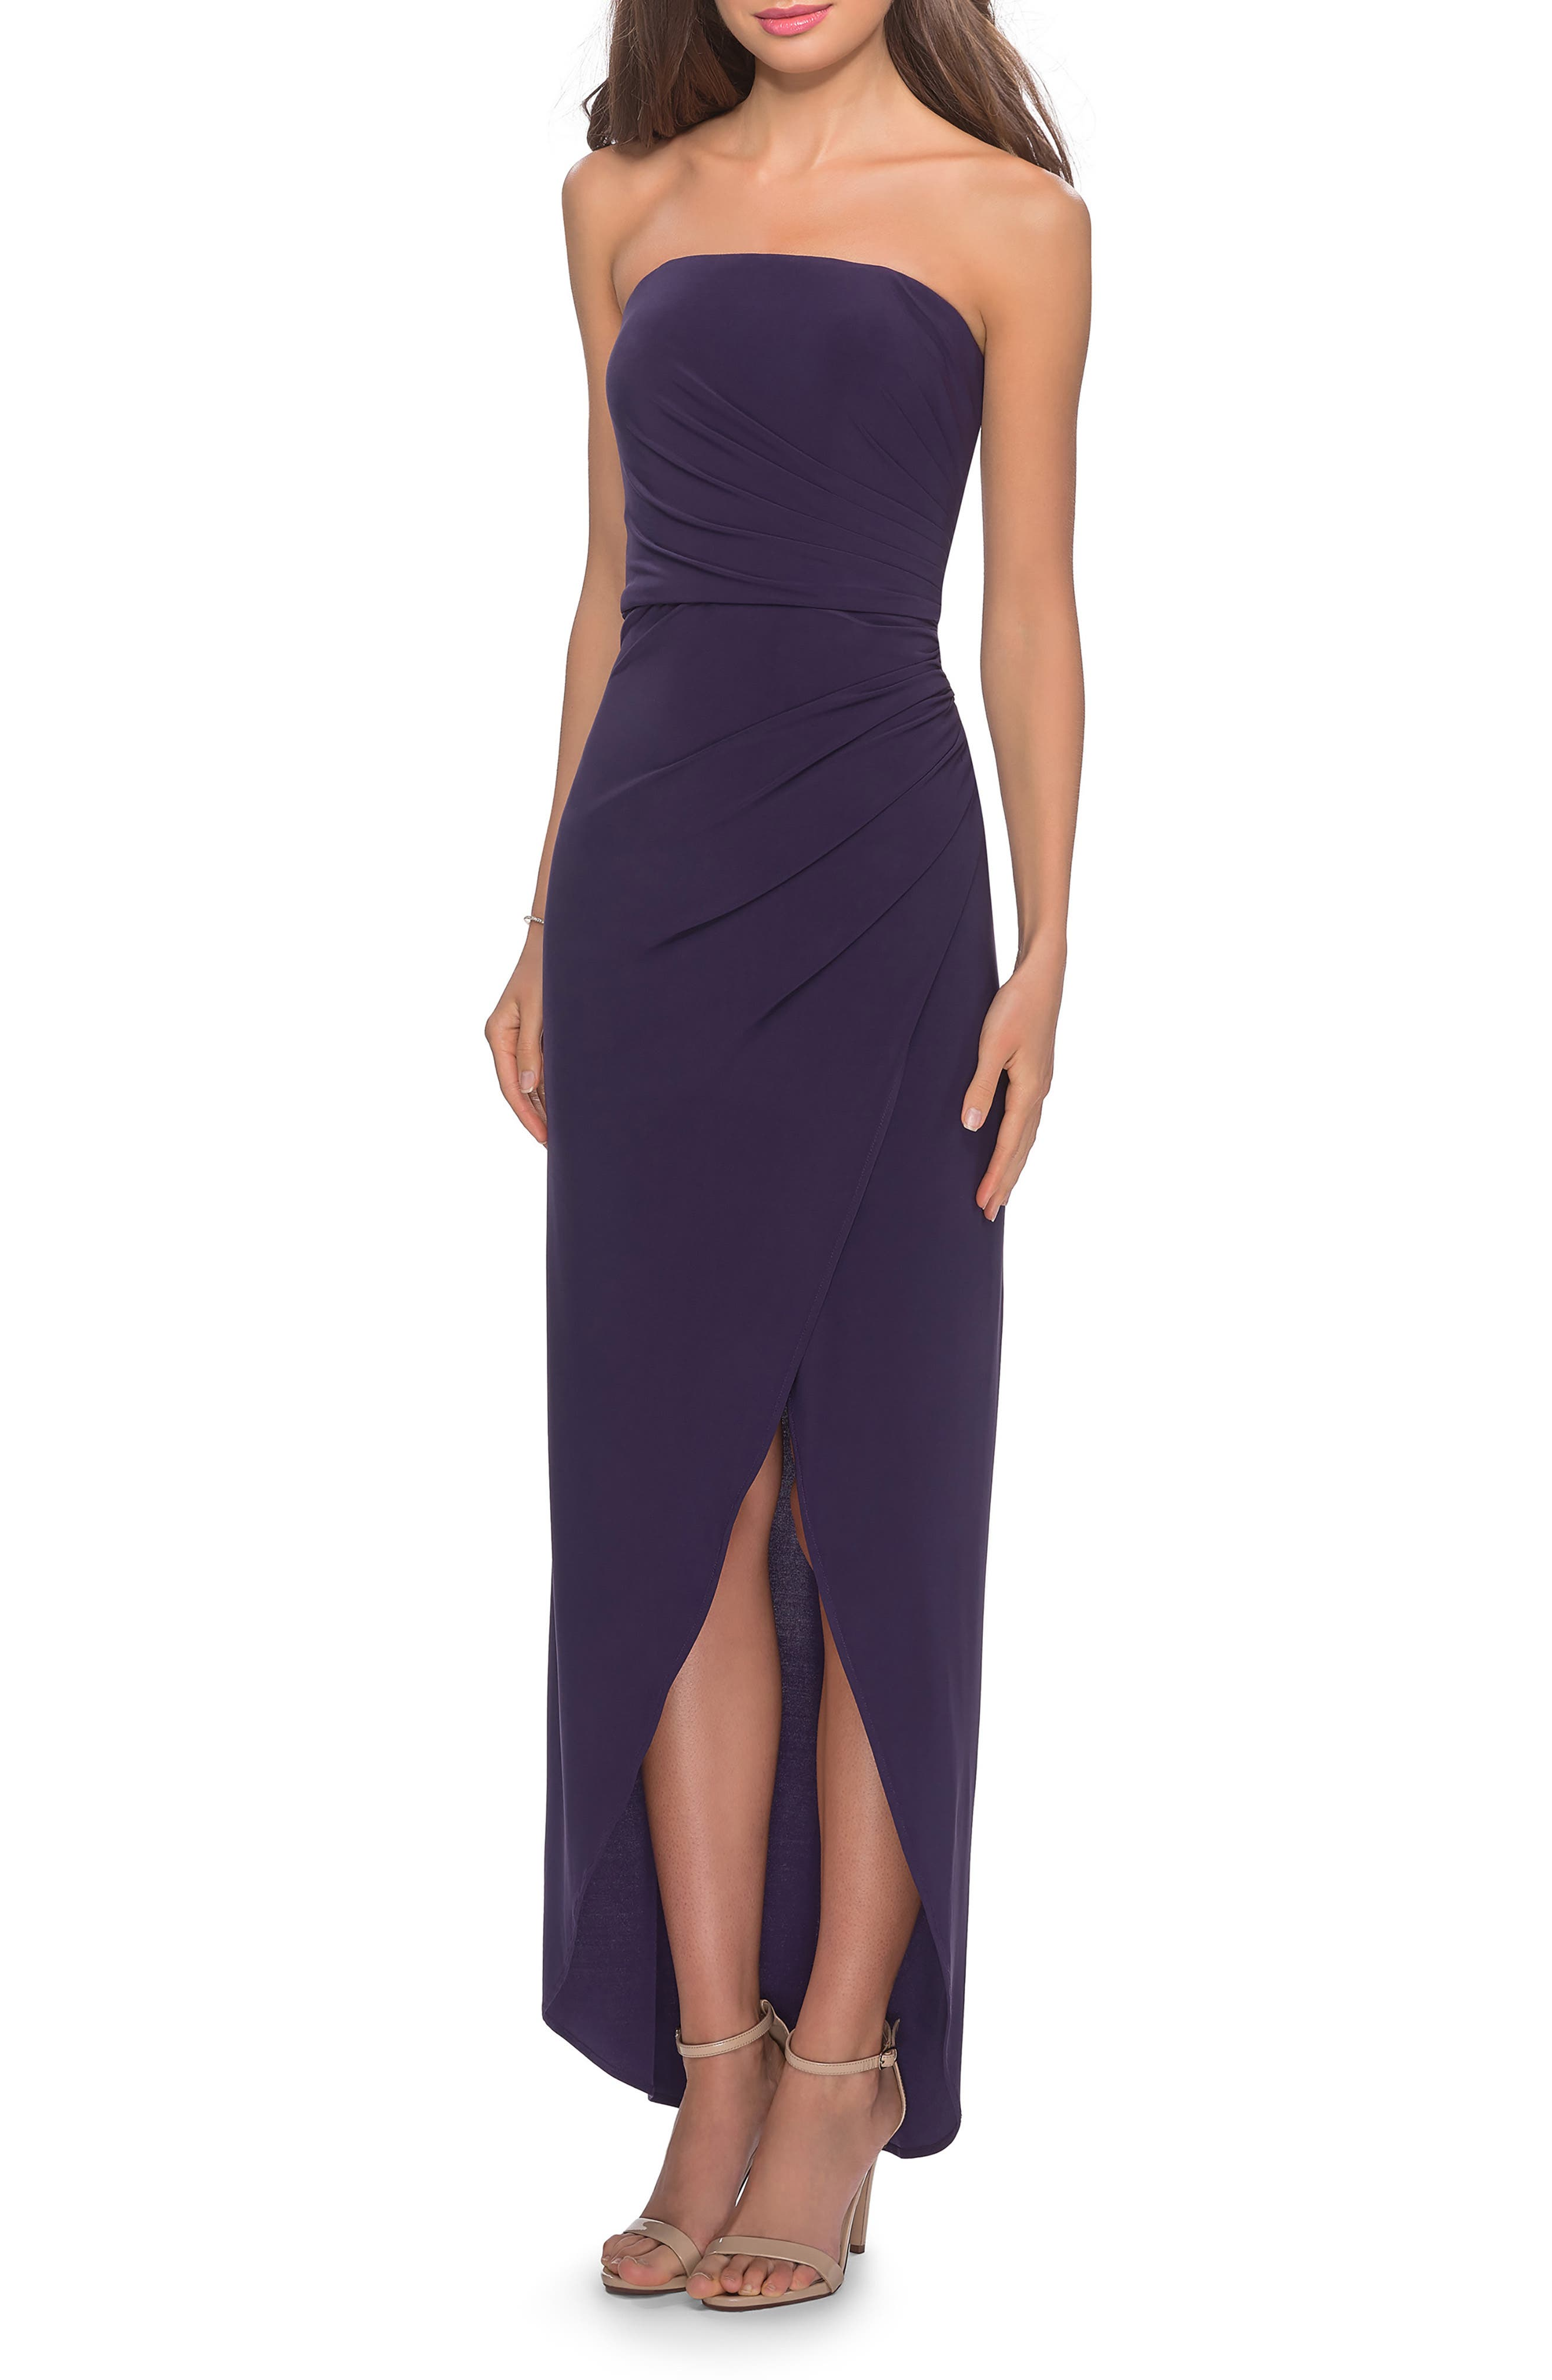 La Femme Strapless Ruched Soft Jersey Gown, Purple